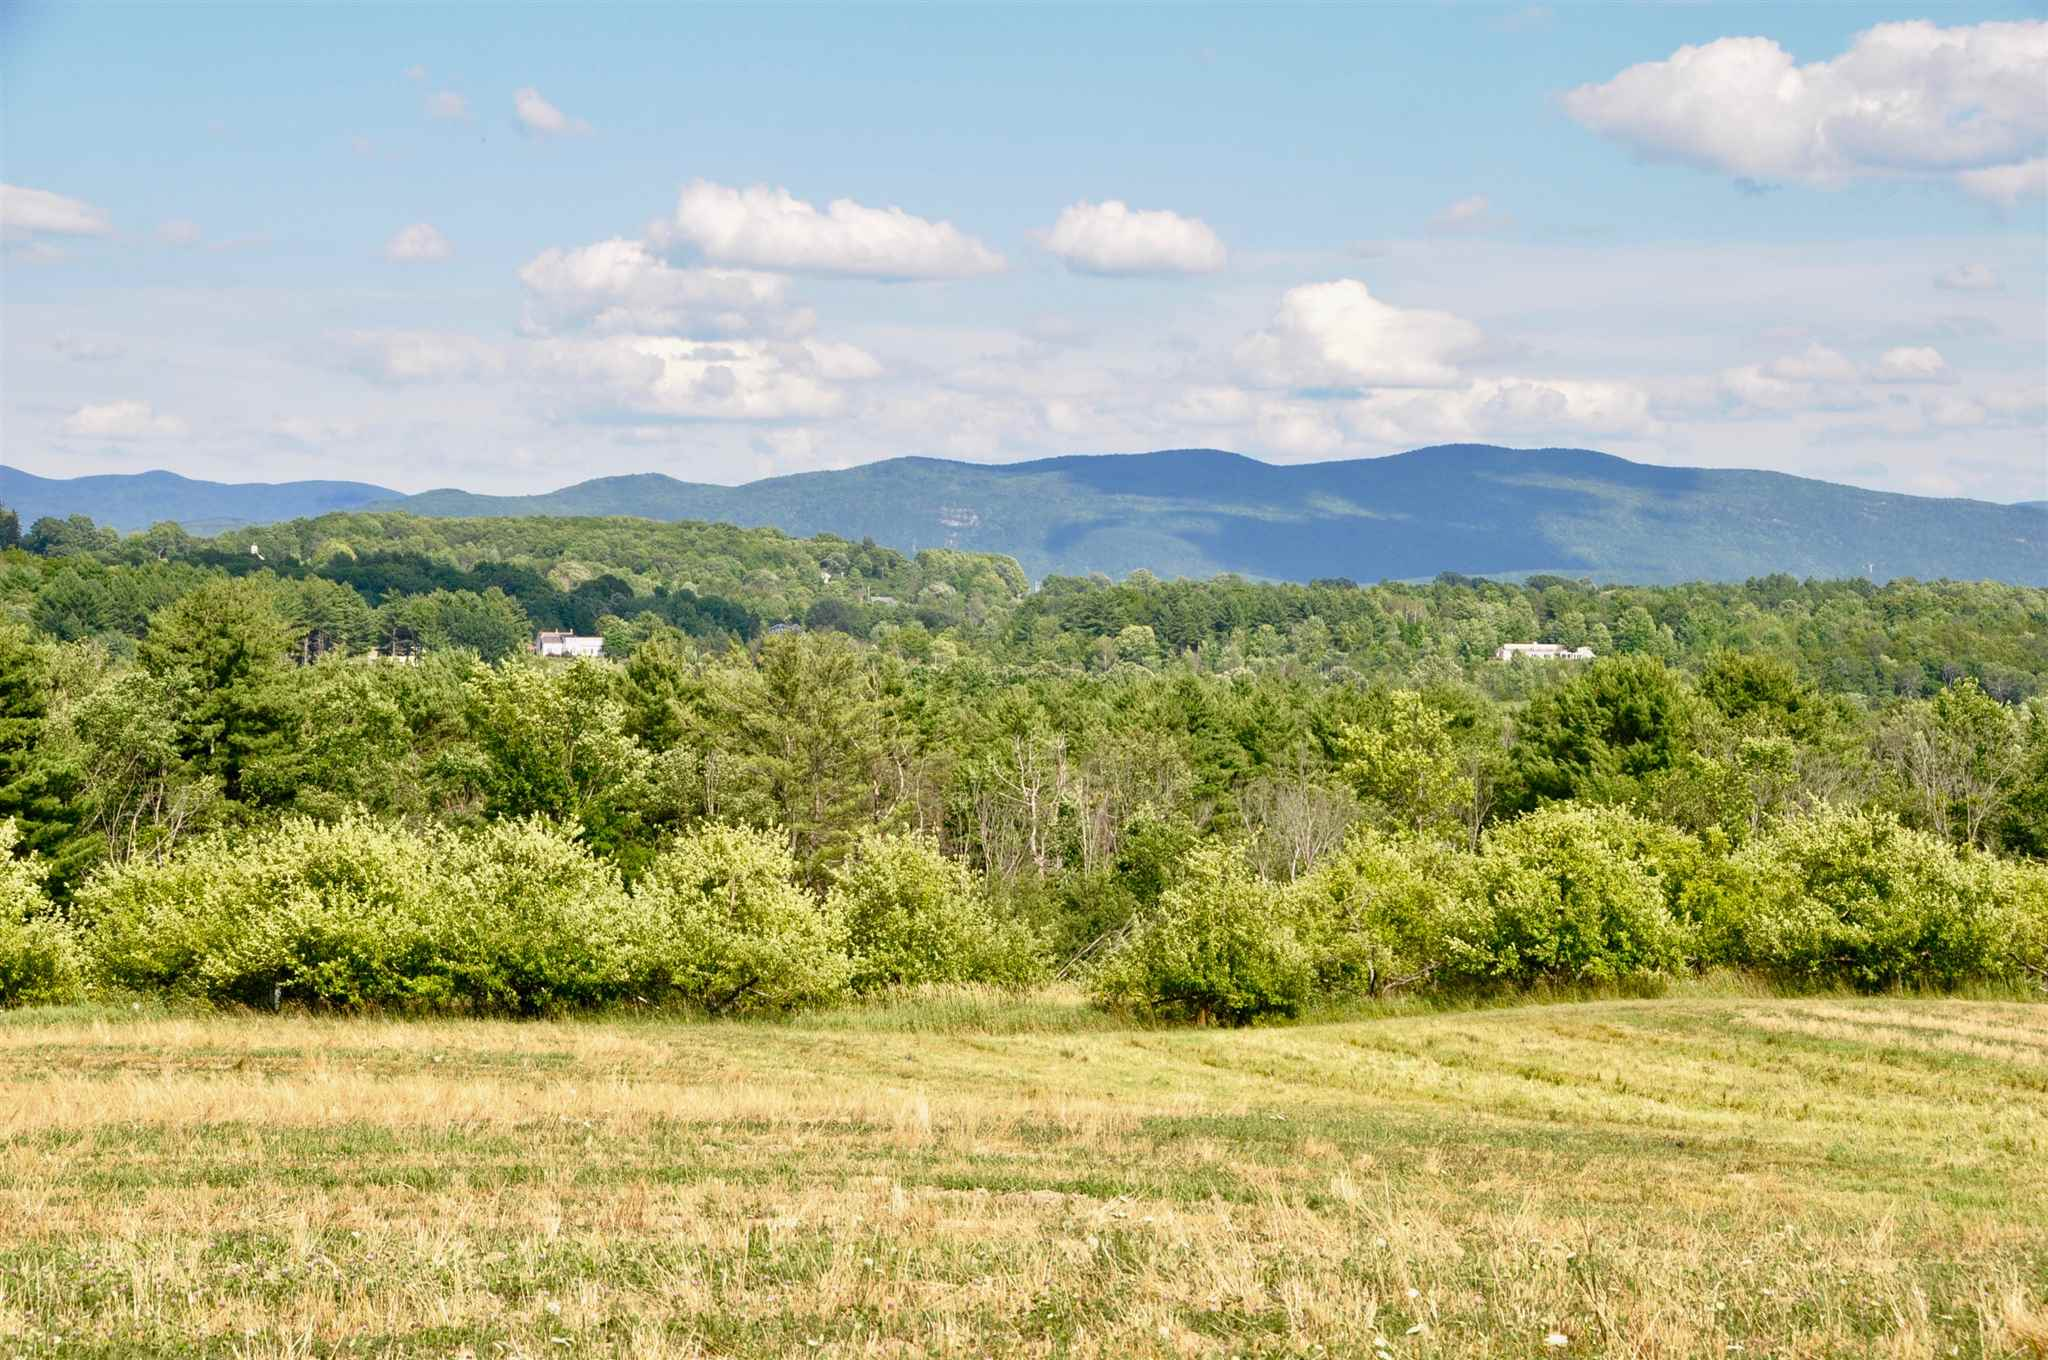 Spectacular, wide range views of the Green Mountains from this 30 acre open parcel in Cornwall. Build your dream home minutes from Middlebury College and downtown Middlebury with its restaurants, shops, theater and more. Development possibilities as well! Sitting on a rise, you look over the pastoral landscape of apple orchards and fields, with conserved land to the south. Here you will have the best of both worlds, privacy and space, but close to amenities. This is exactly what you have been waiting for.  A septic design for a four bedroom home is in the works, as is a final survey- so you will be ready to go!